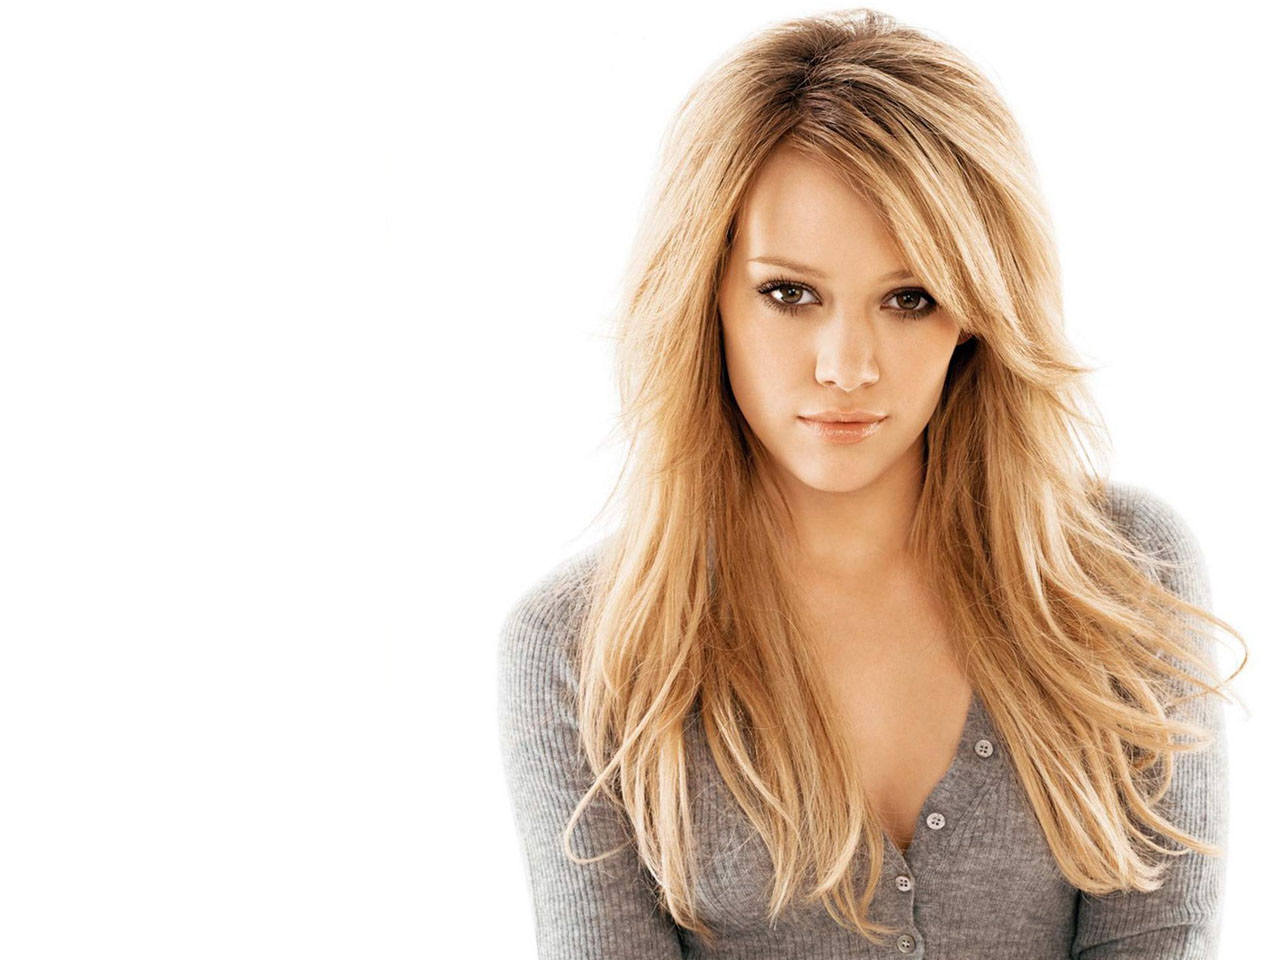 Nice Images Collection: Hilary Duff Desktop Wallpapers